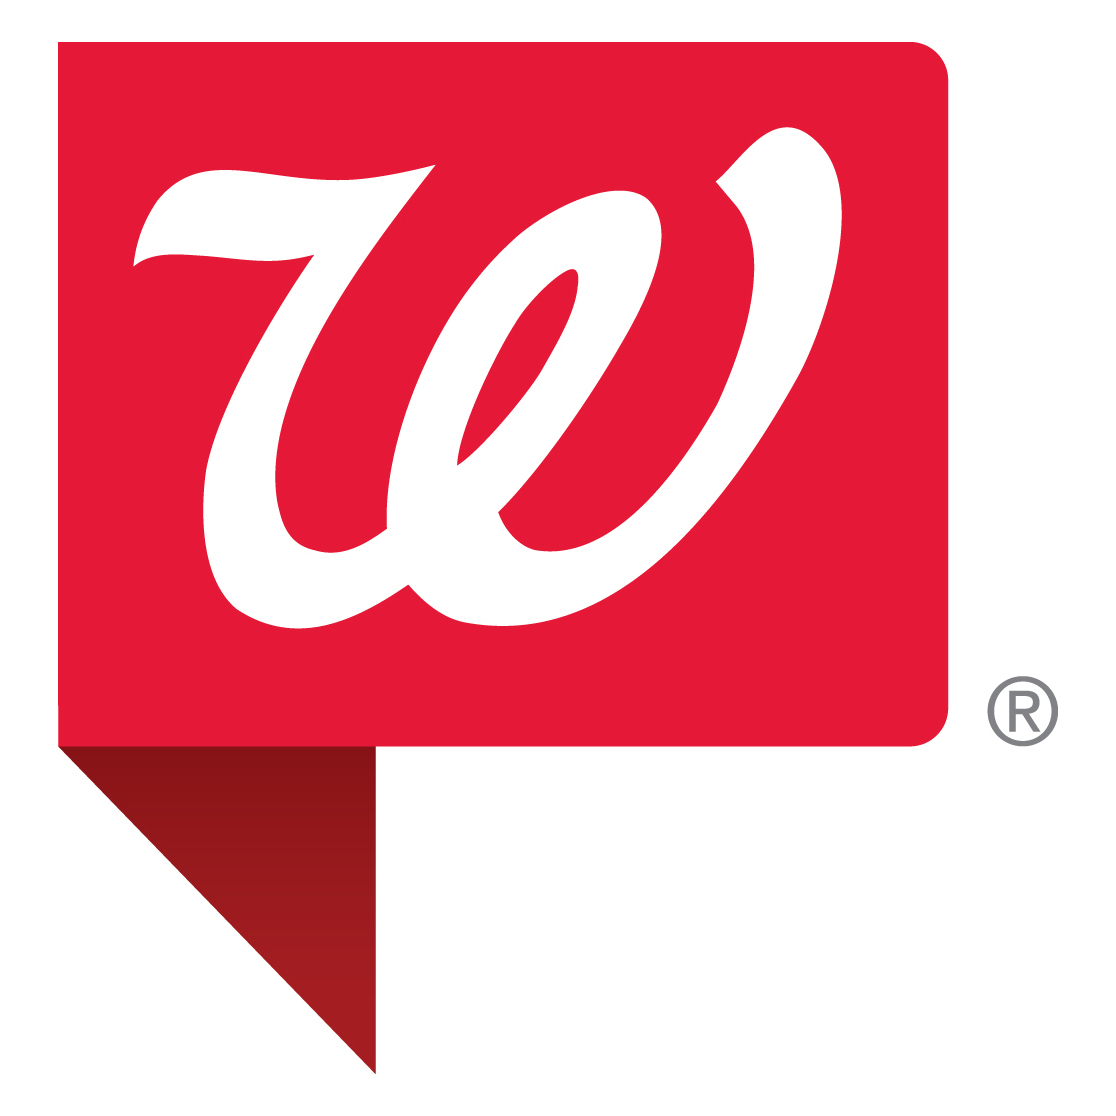 Walgreens - Cincinnati, OH - Pharmacist